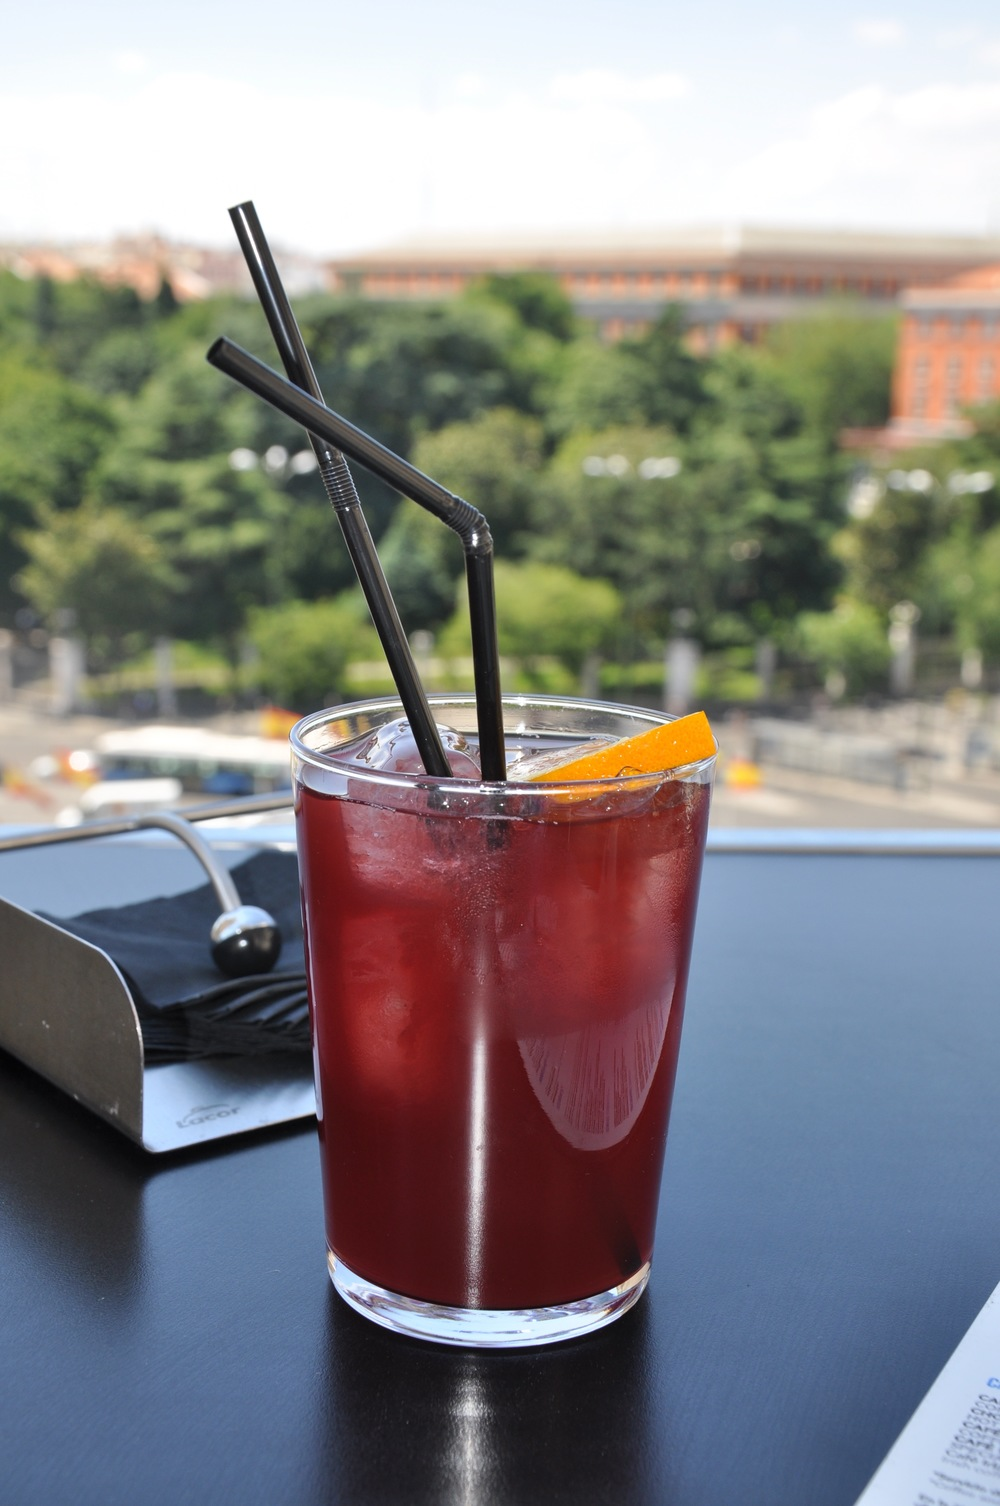 The Sangria is totally recommended.